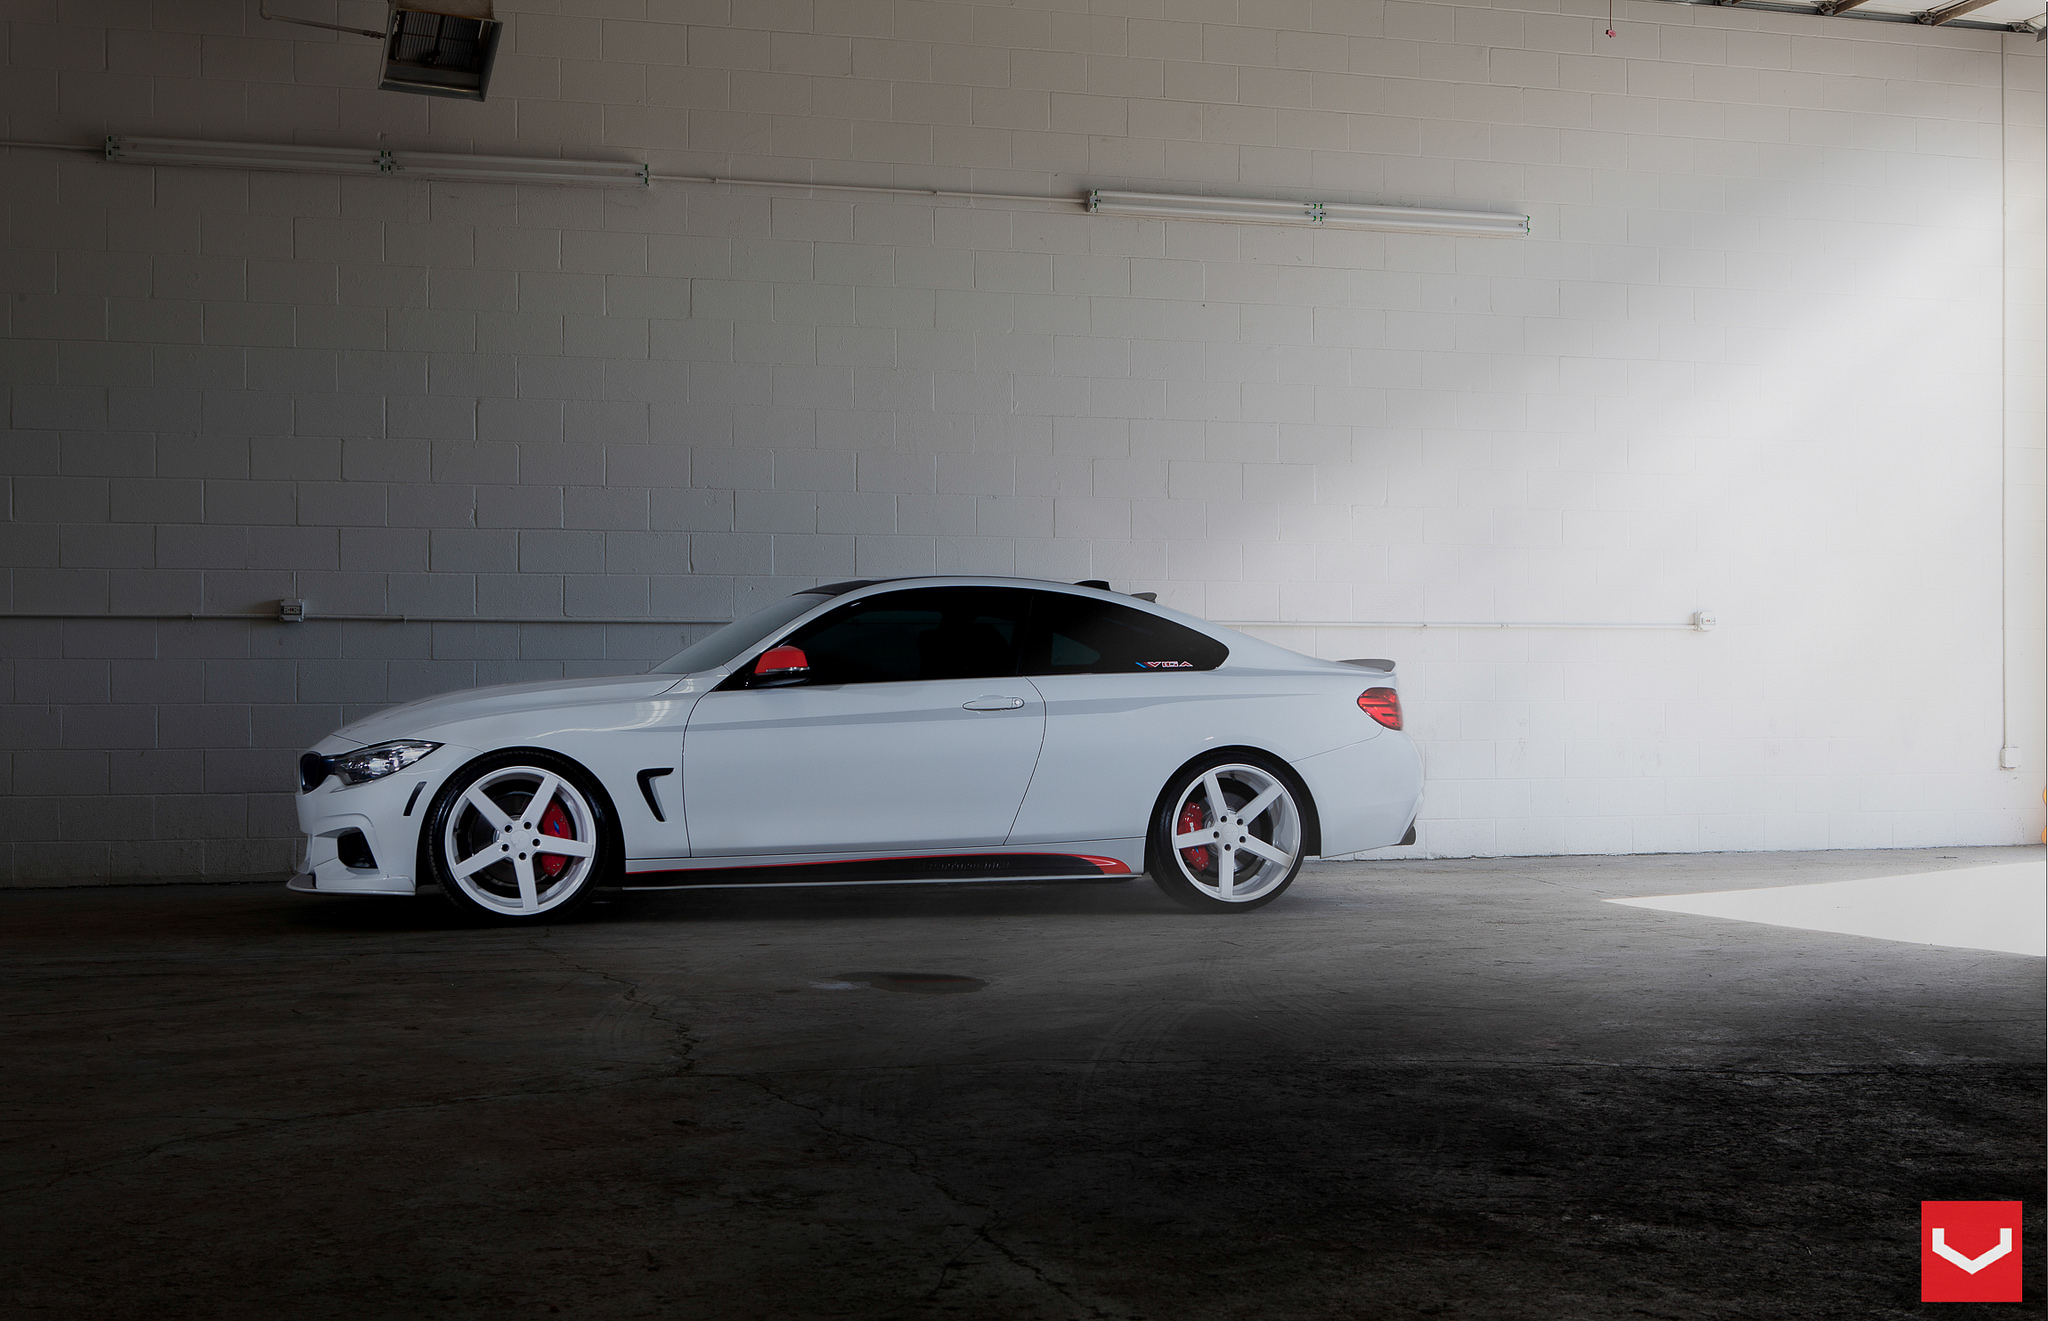 Bmw 4 Series Coupe With White Wheels Is Extreme But Good